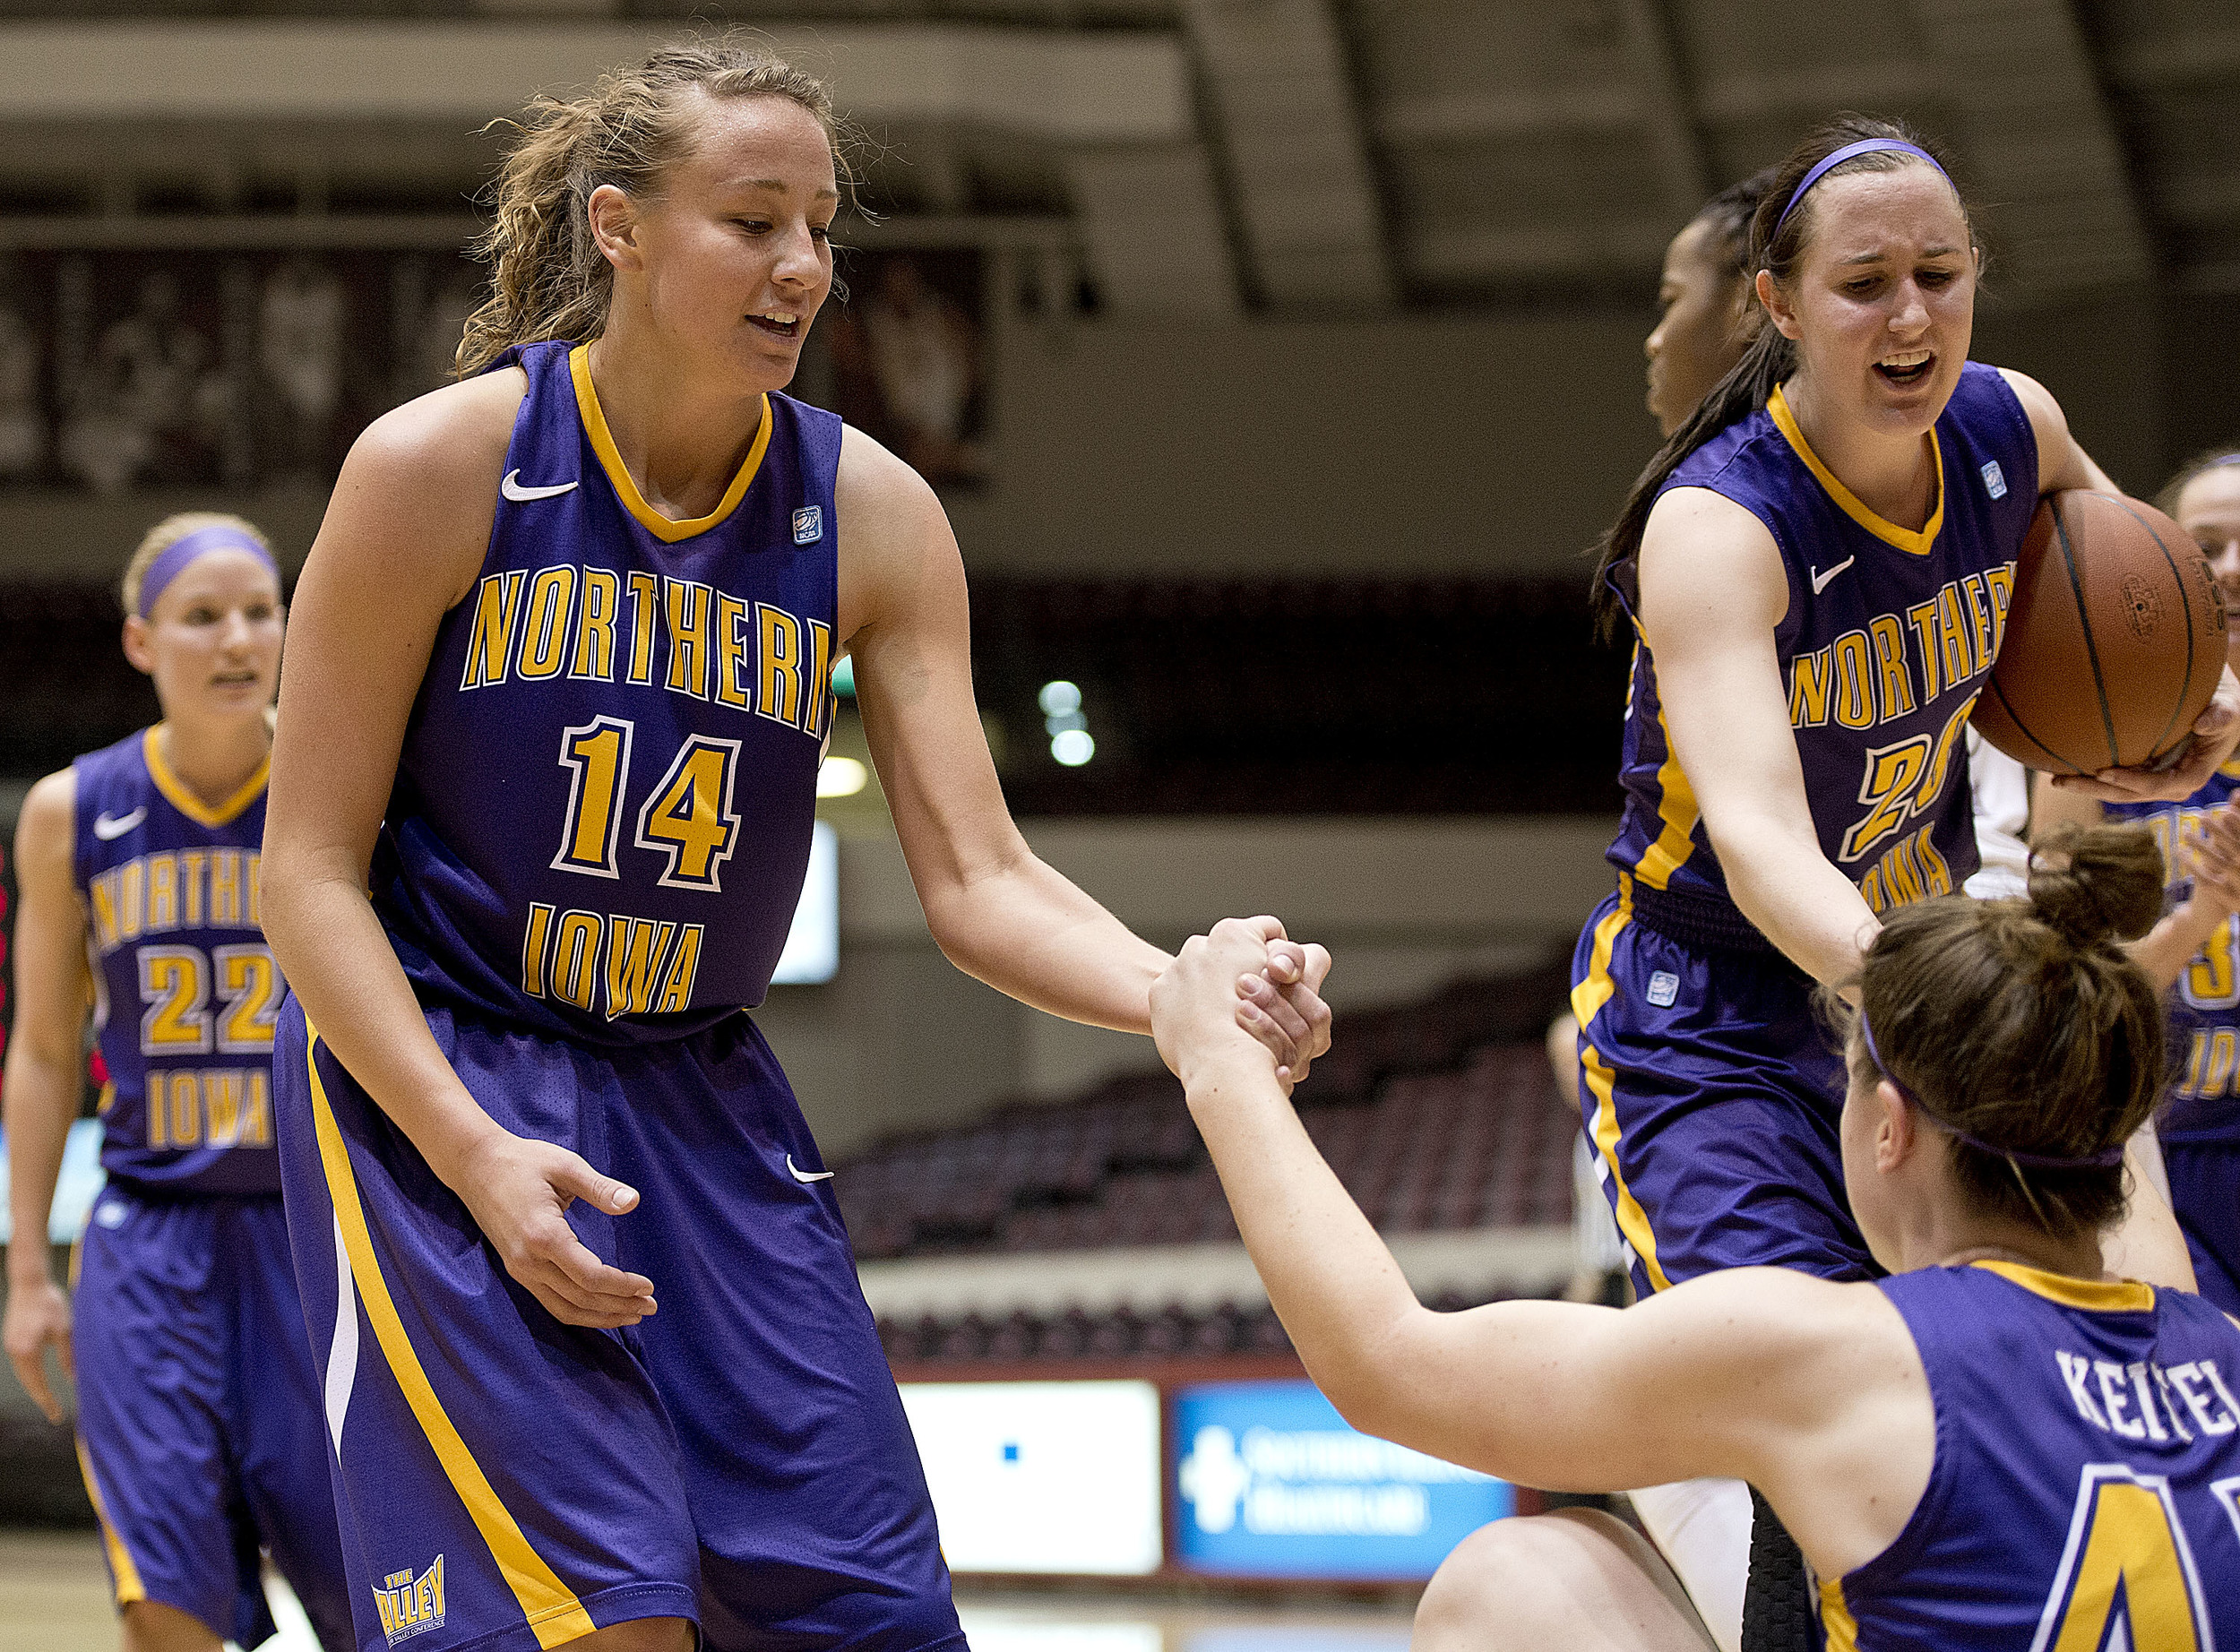 Northern Iowa's Stephanie Davidson, left, and Hannah Schonhardt, right, help Jen Keitel get back up to her feet after taking a charge.